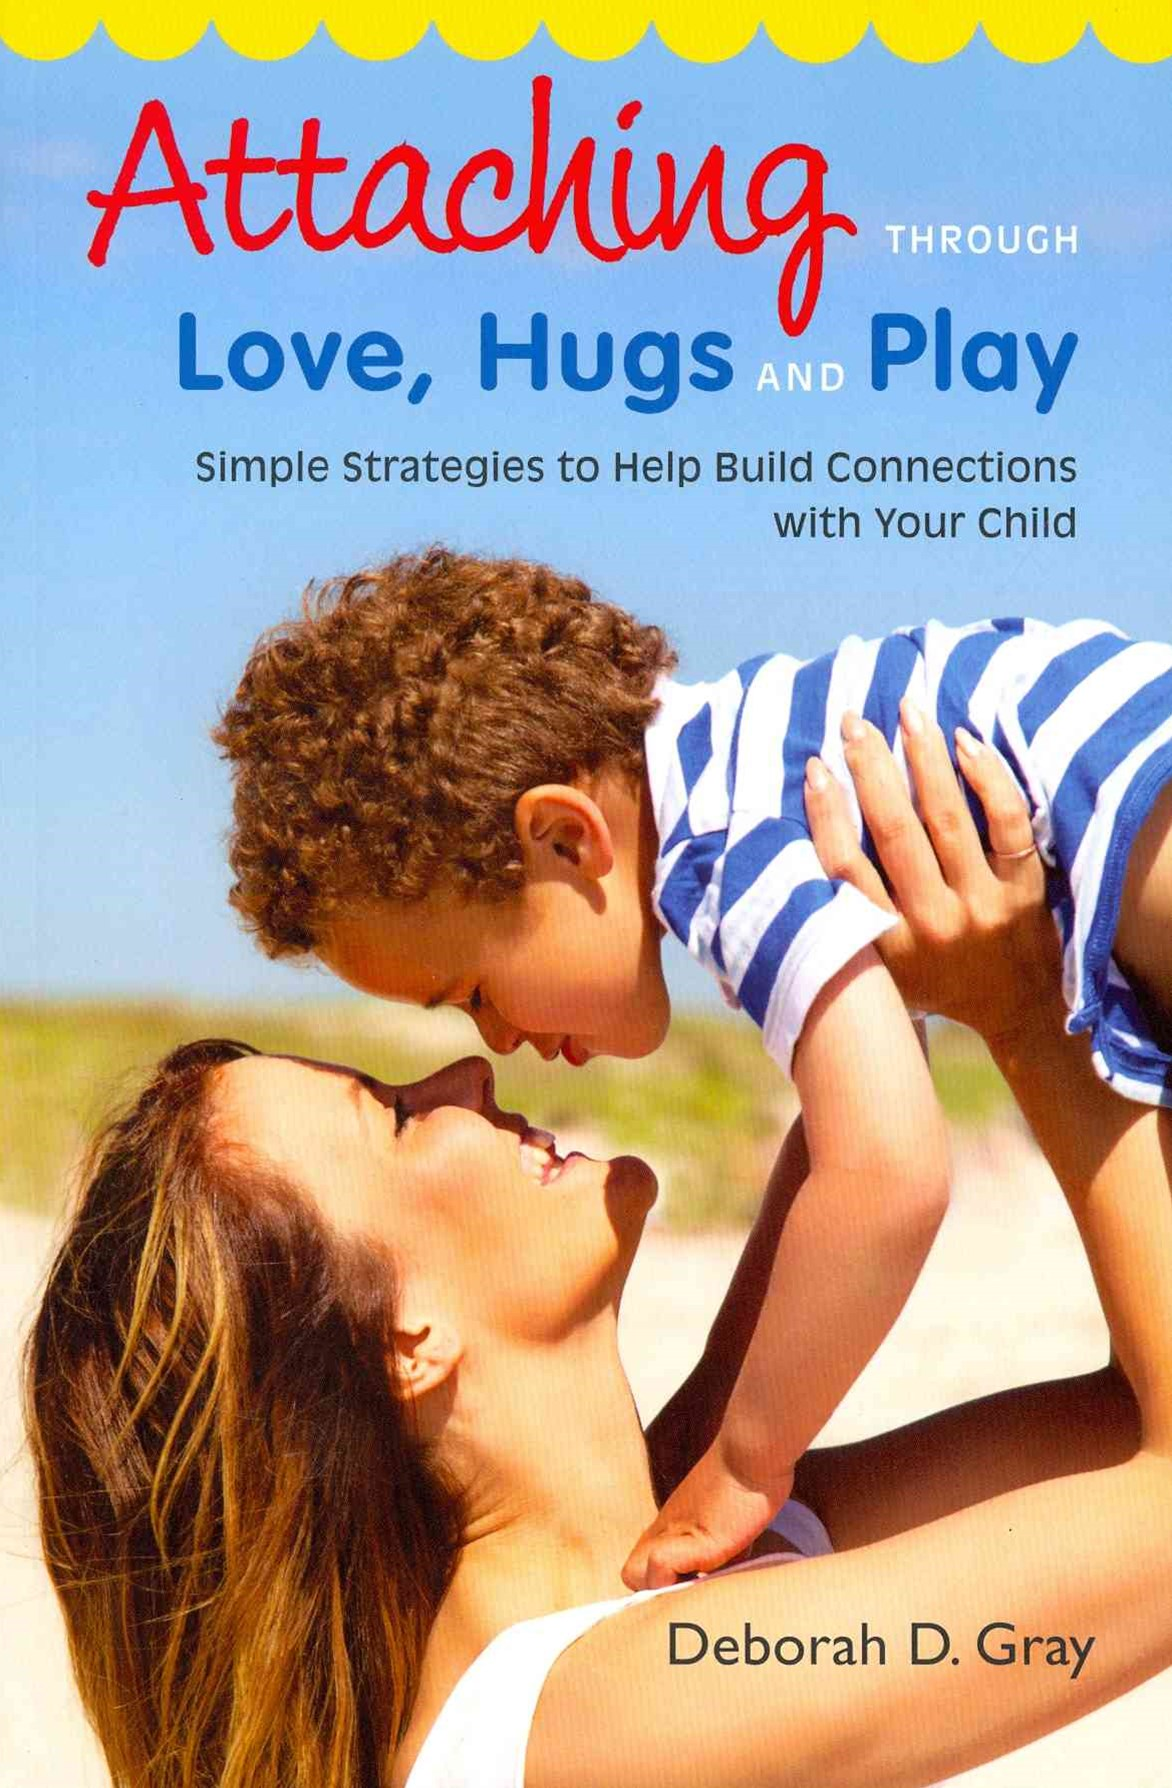 Attaching Through Love, Hugs and Play